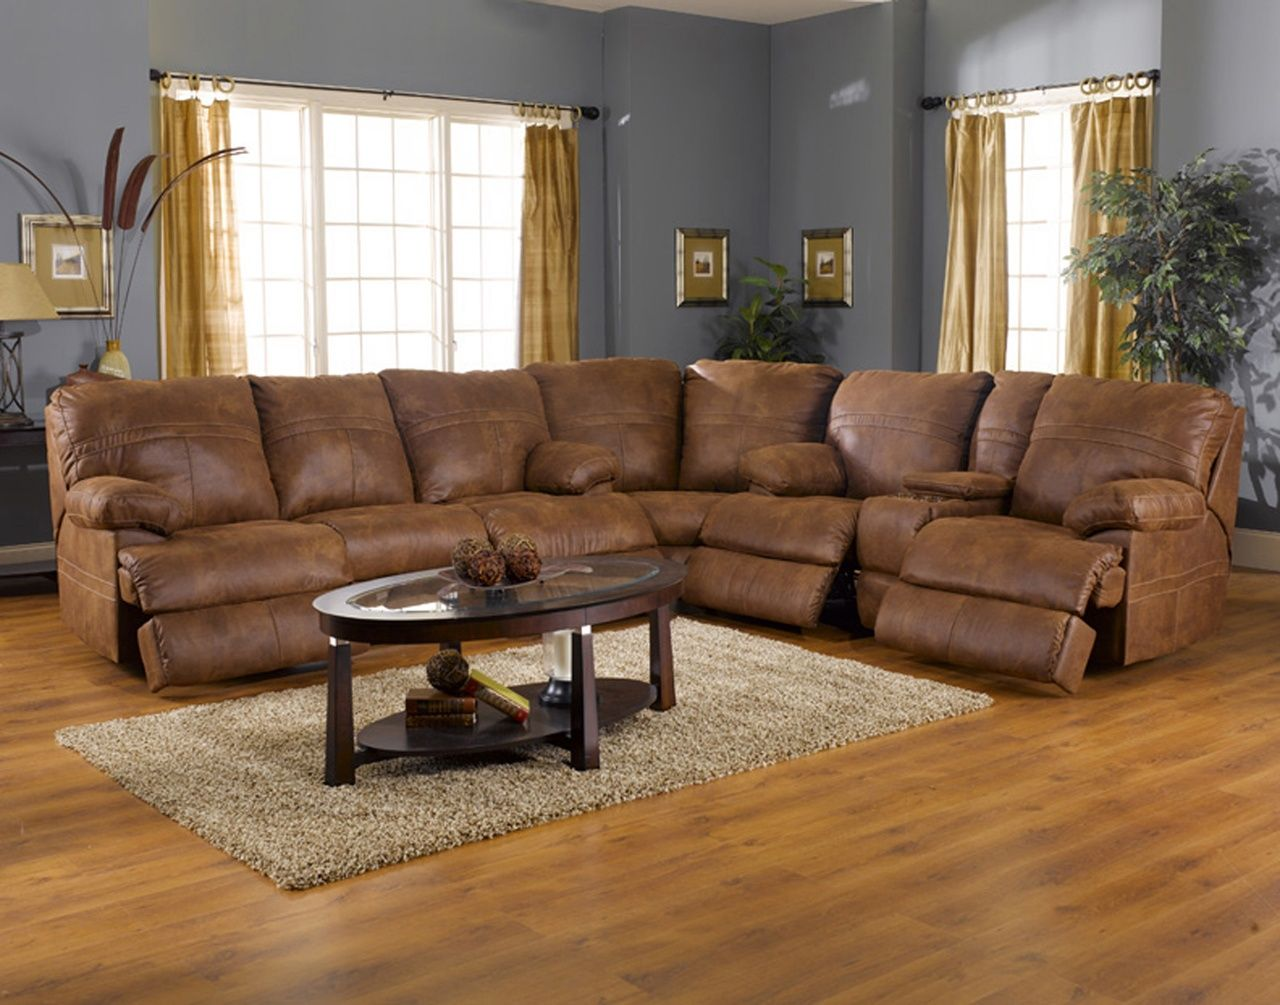 Recliner Sectional Sofa Sectional Sofa With Recliner Sectional Sofa Leather Sectional Sofa